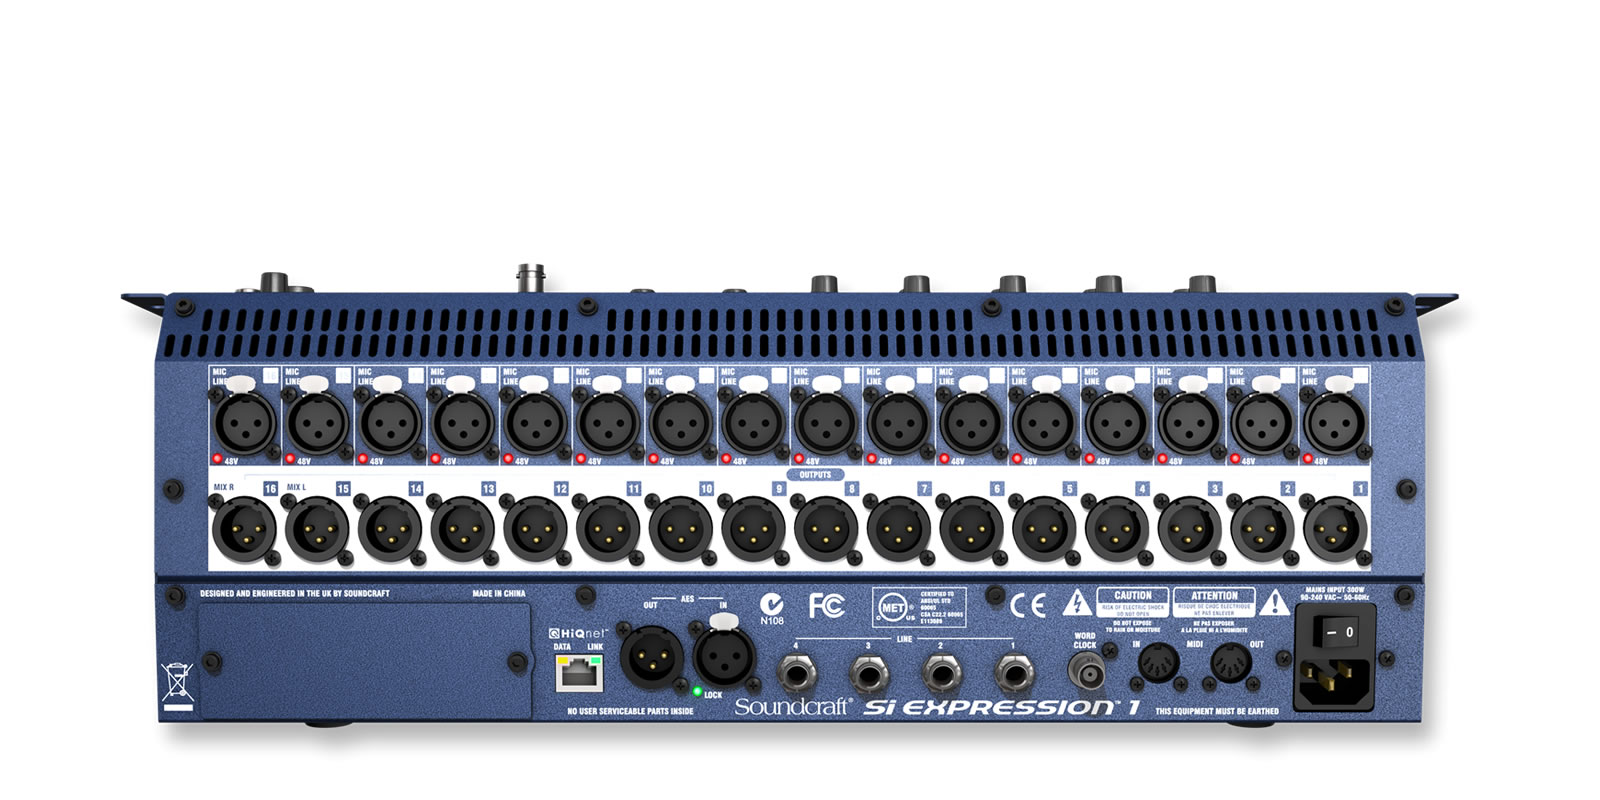 Si Expression 1 Soundcraft Professional Audio Mixers Simple Microphone Mixer Circuit With Op Amp Mic Pre